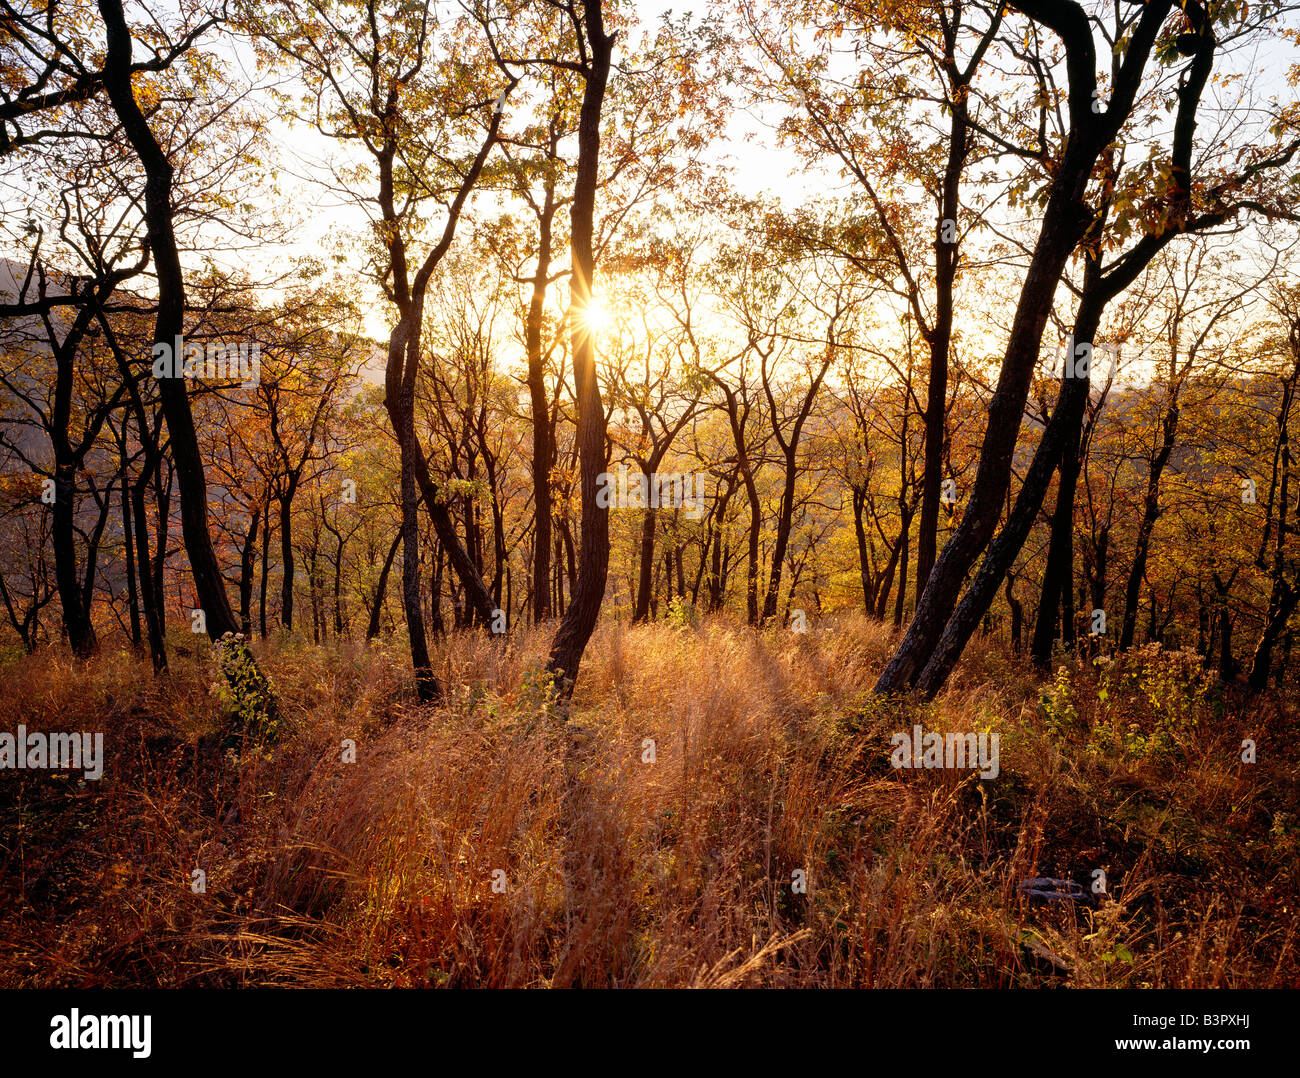 SETTING SUN ON AUTUMN LEAVES, MT. TAMMANY, WORTHINGTON STATE FOREST, DELAWARE WATER GAP, NEW JERSEY, USA - Stock Image